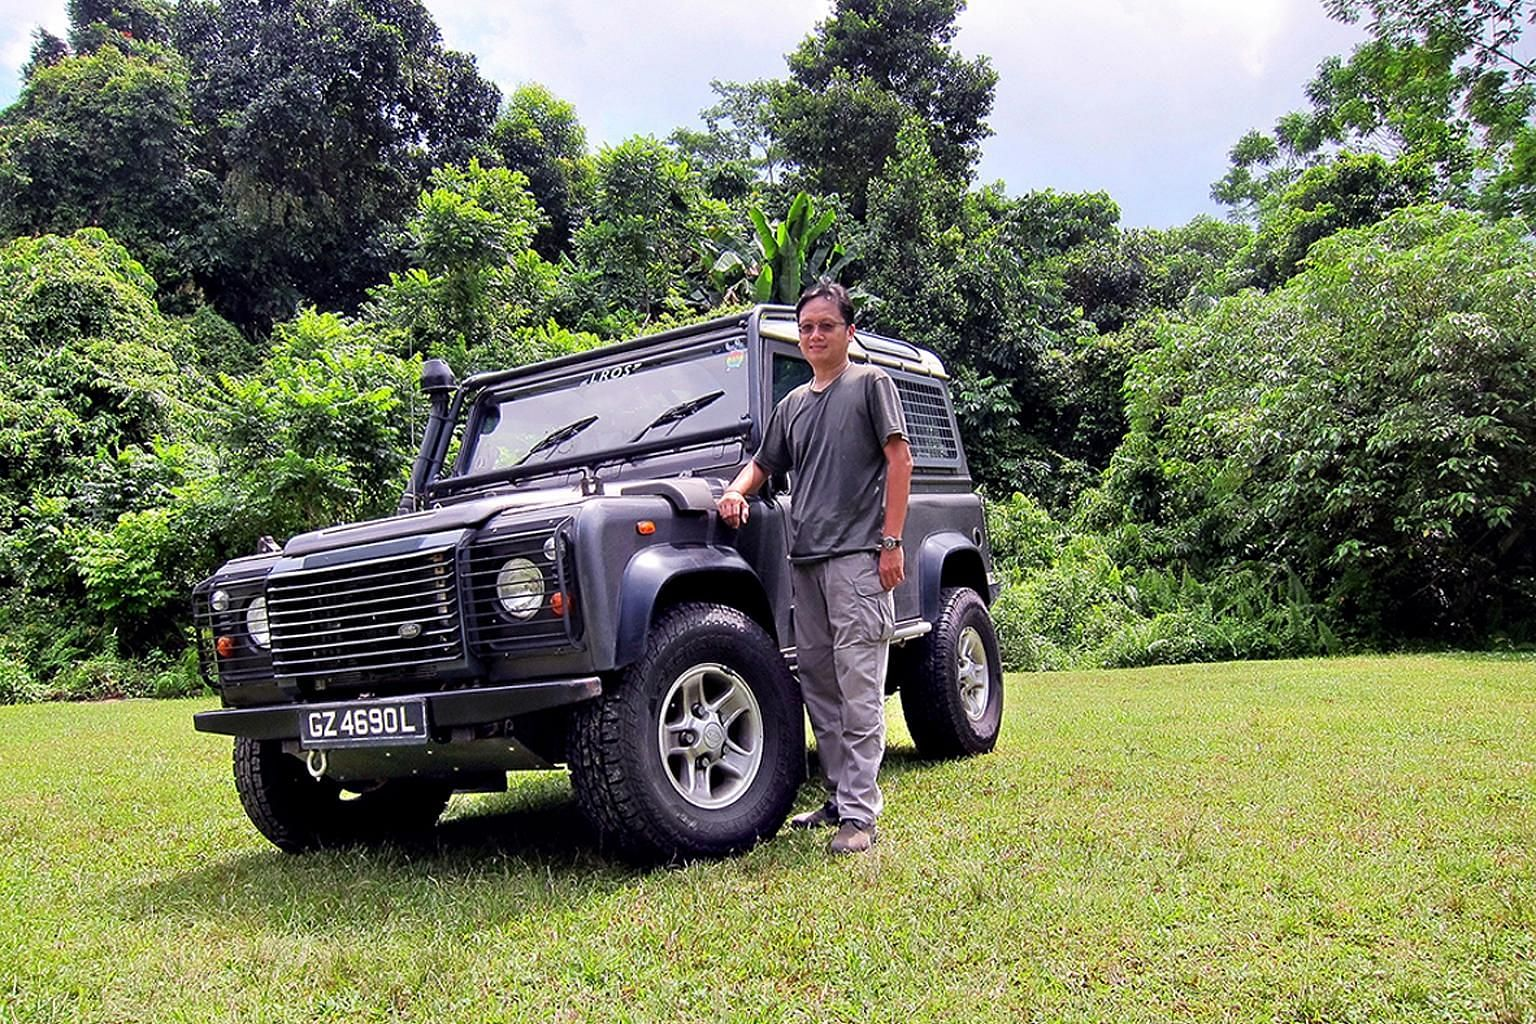 Mr Tan Meng Choon bought the Land Rover Defender in 2006 for $79,000.